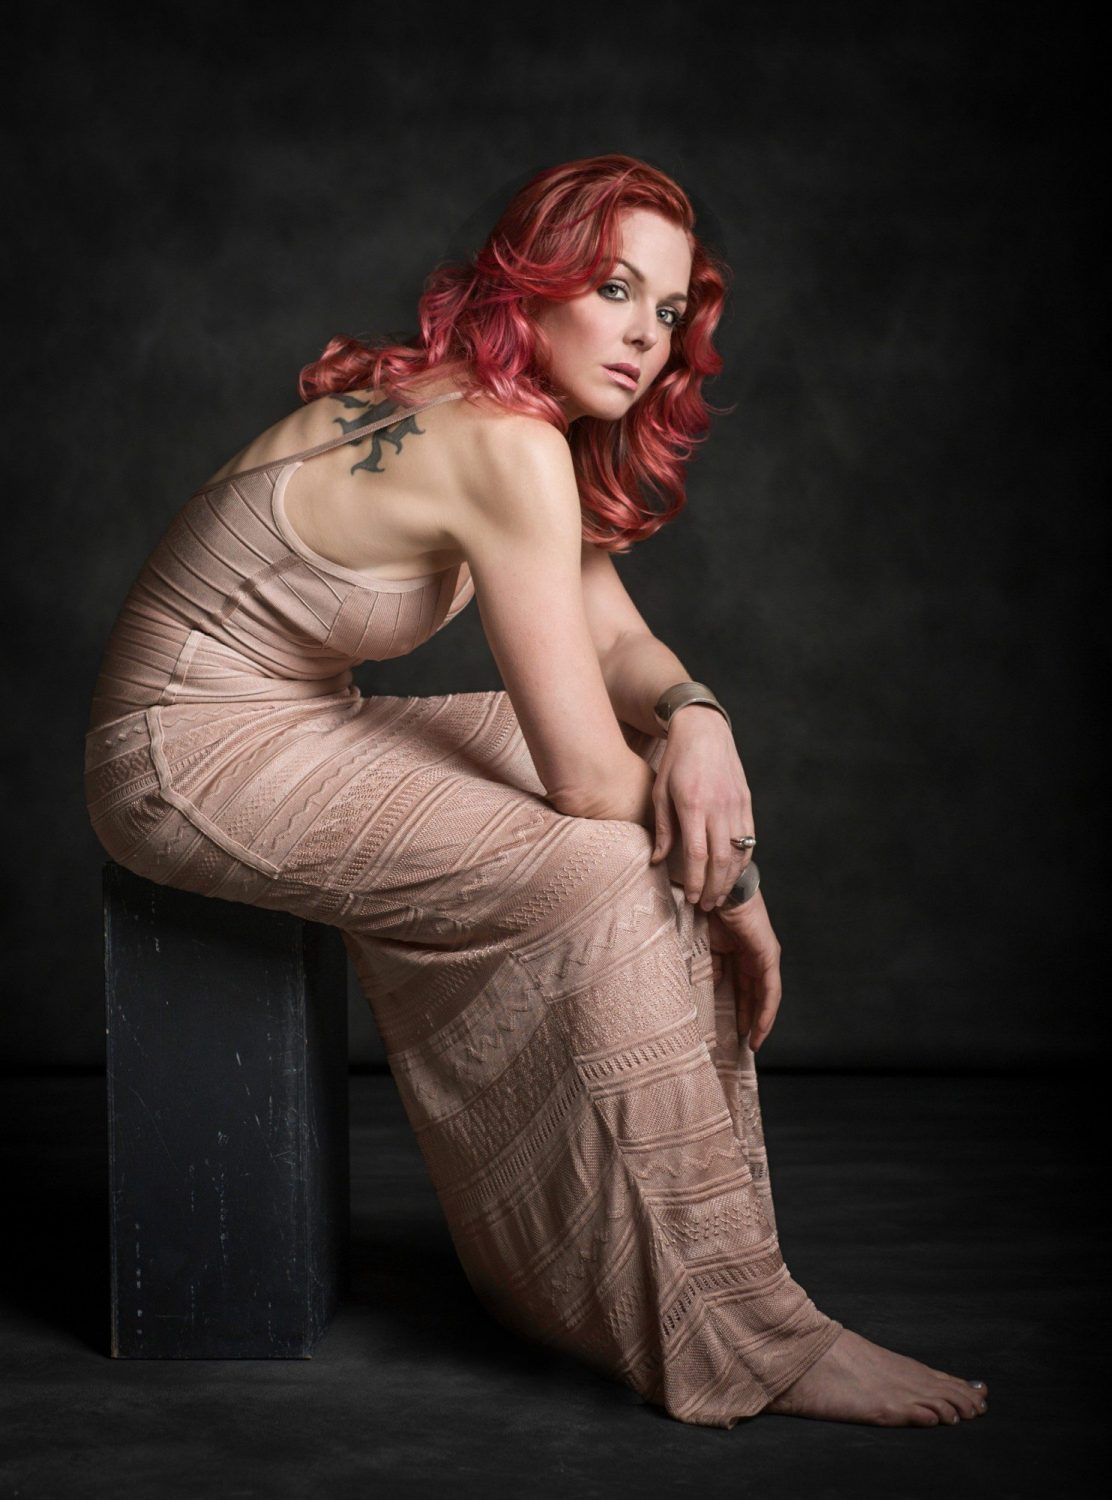 Storm Large is ready for 54 Below on Dec. 19, talks about Pink Martini, The Limelight & more